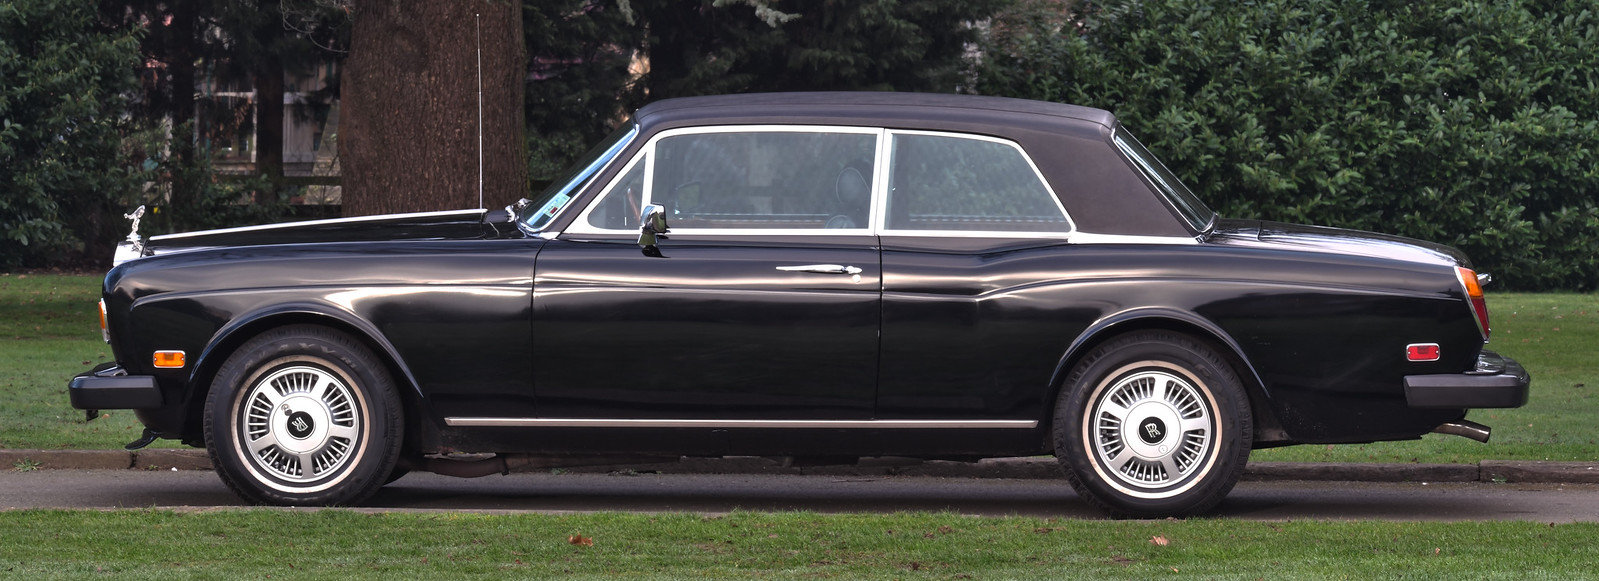 1976 Rolls Royce Corniche II Coupe LHD SOLD (picture 2 of 6)